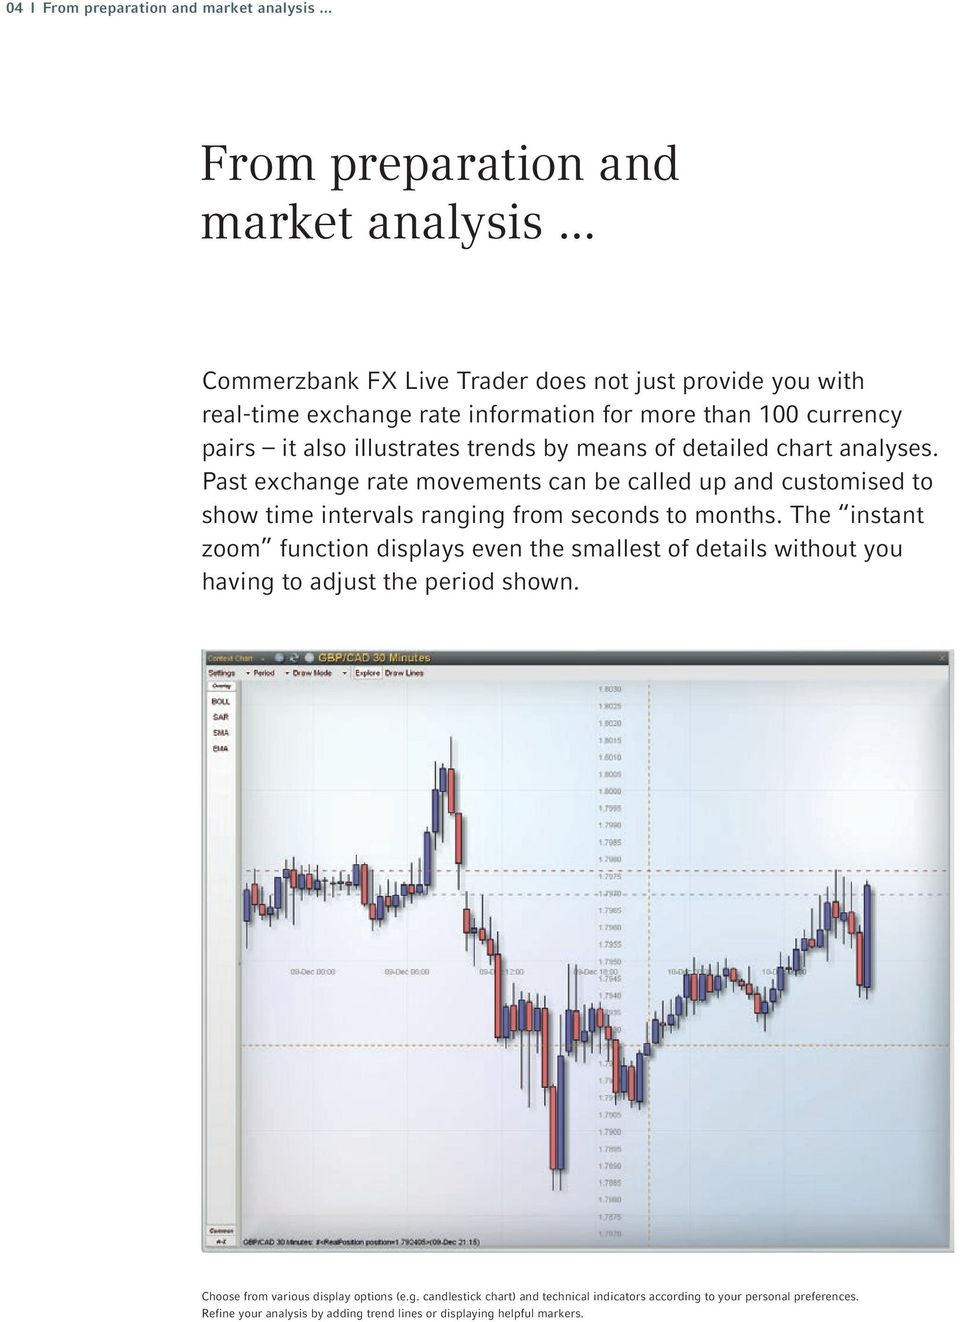 .. Commerzbank FX Live Trader does not just provide you with real-time exchange rate information for more than 100 currency pairs it also illustrates trends by means of